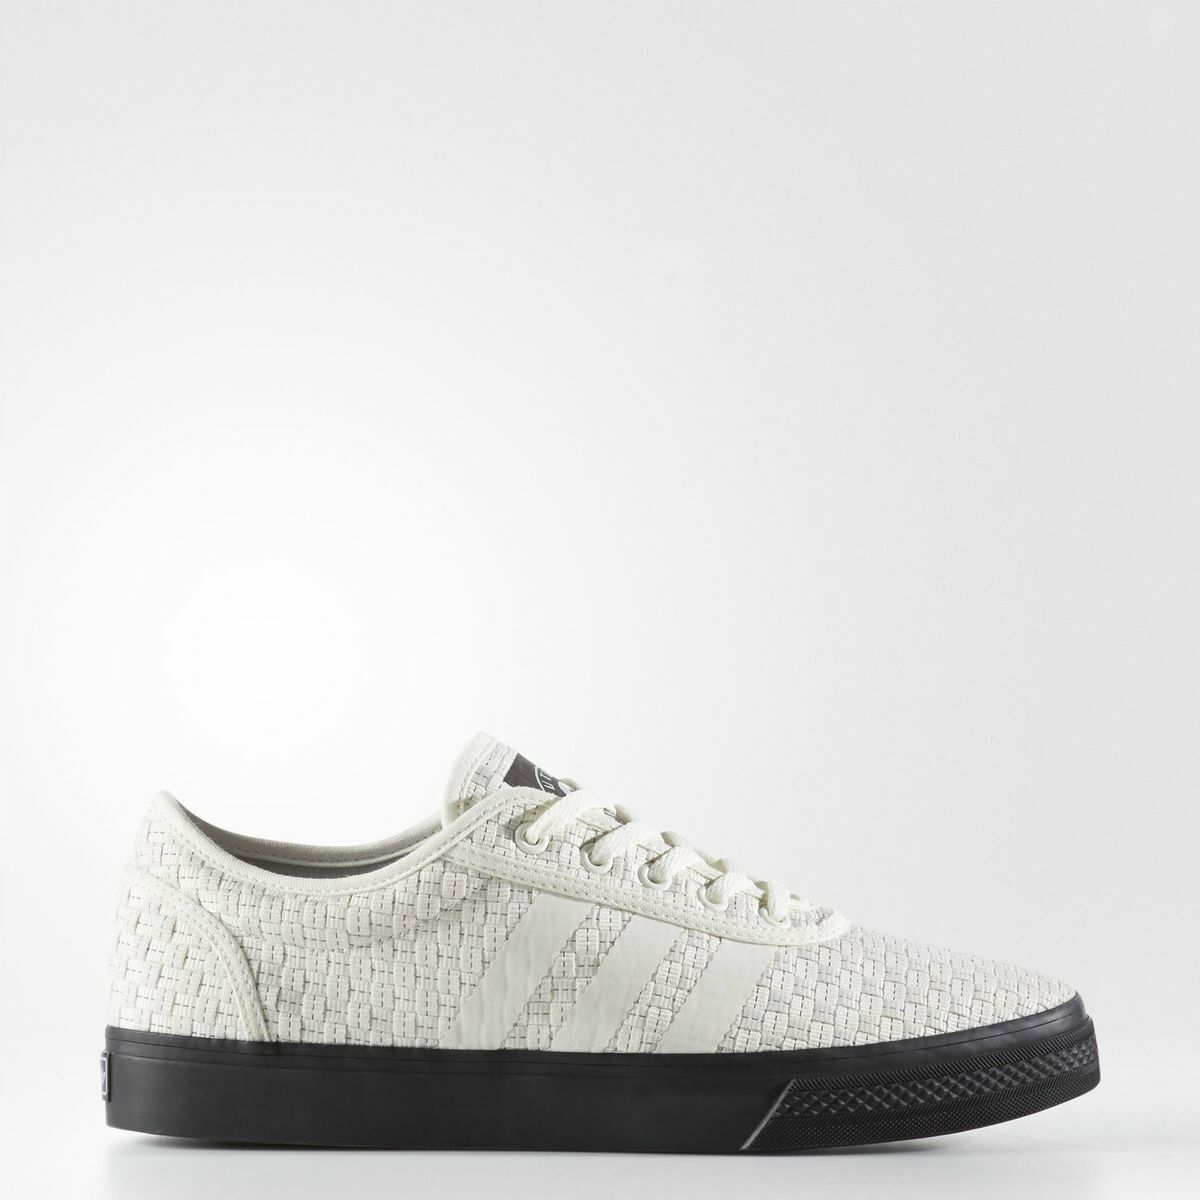 BY4519 Adiease x Gasius Men Women shoes Sneakers White